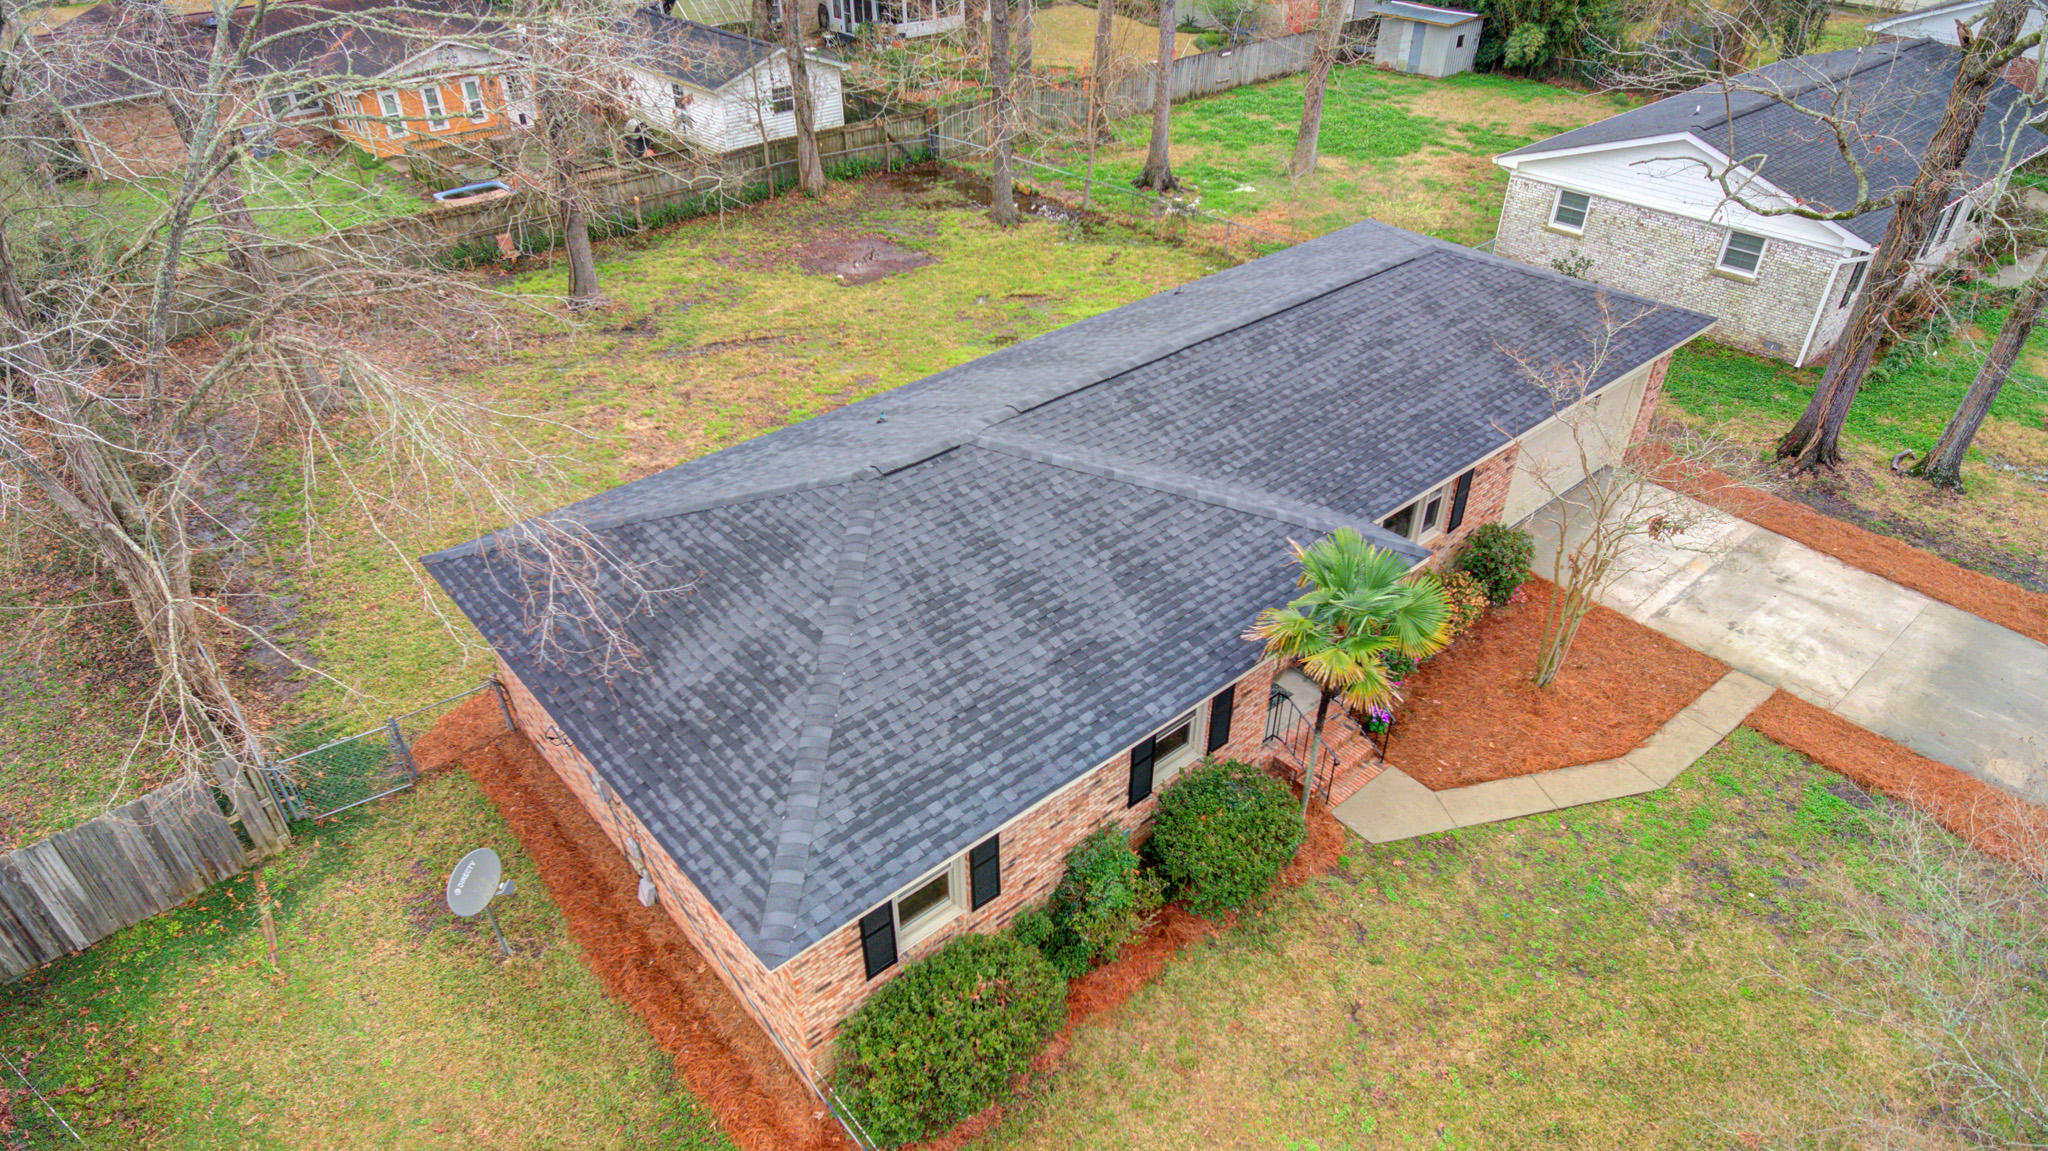 North Tranquil Acres Homes For Sale - 109 Monroe, Ladson, SC - 1